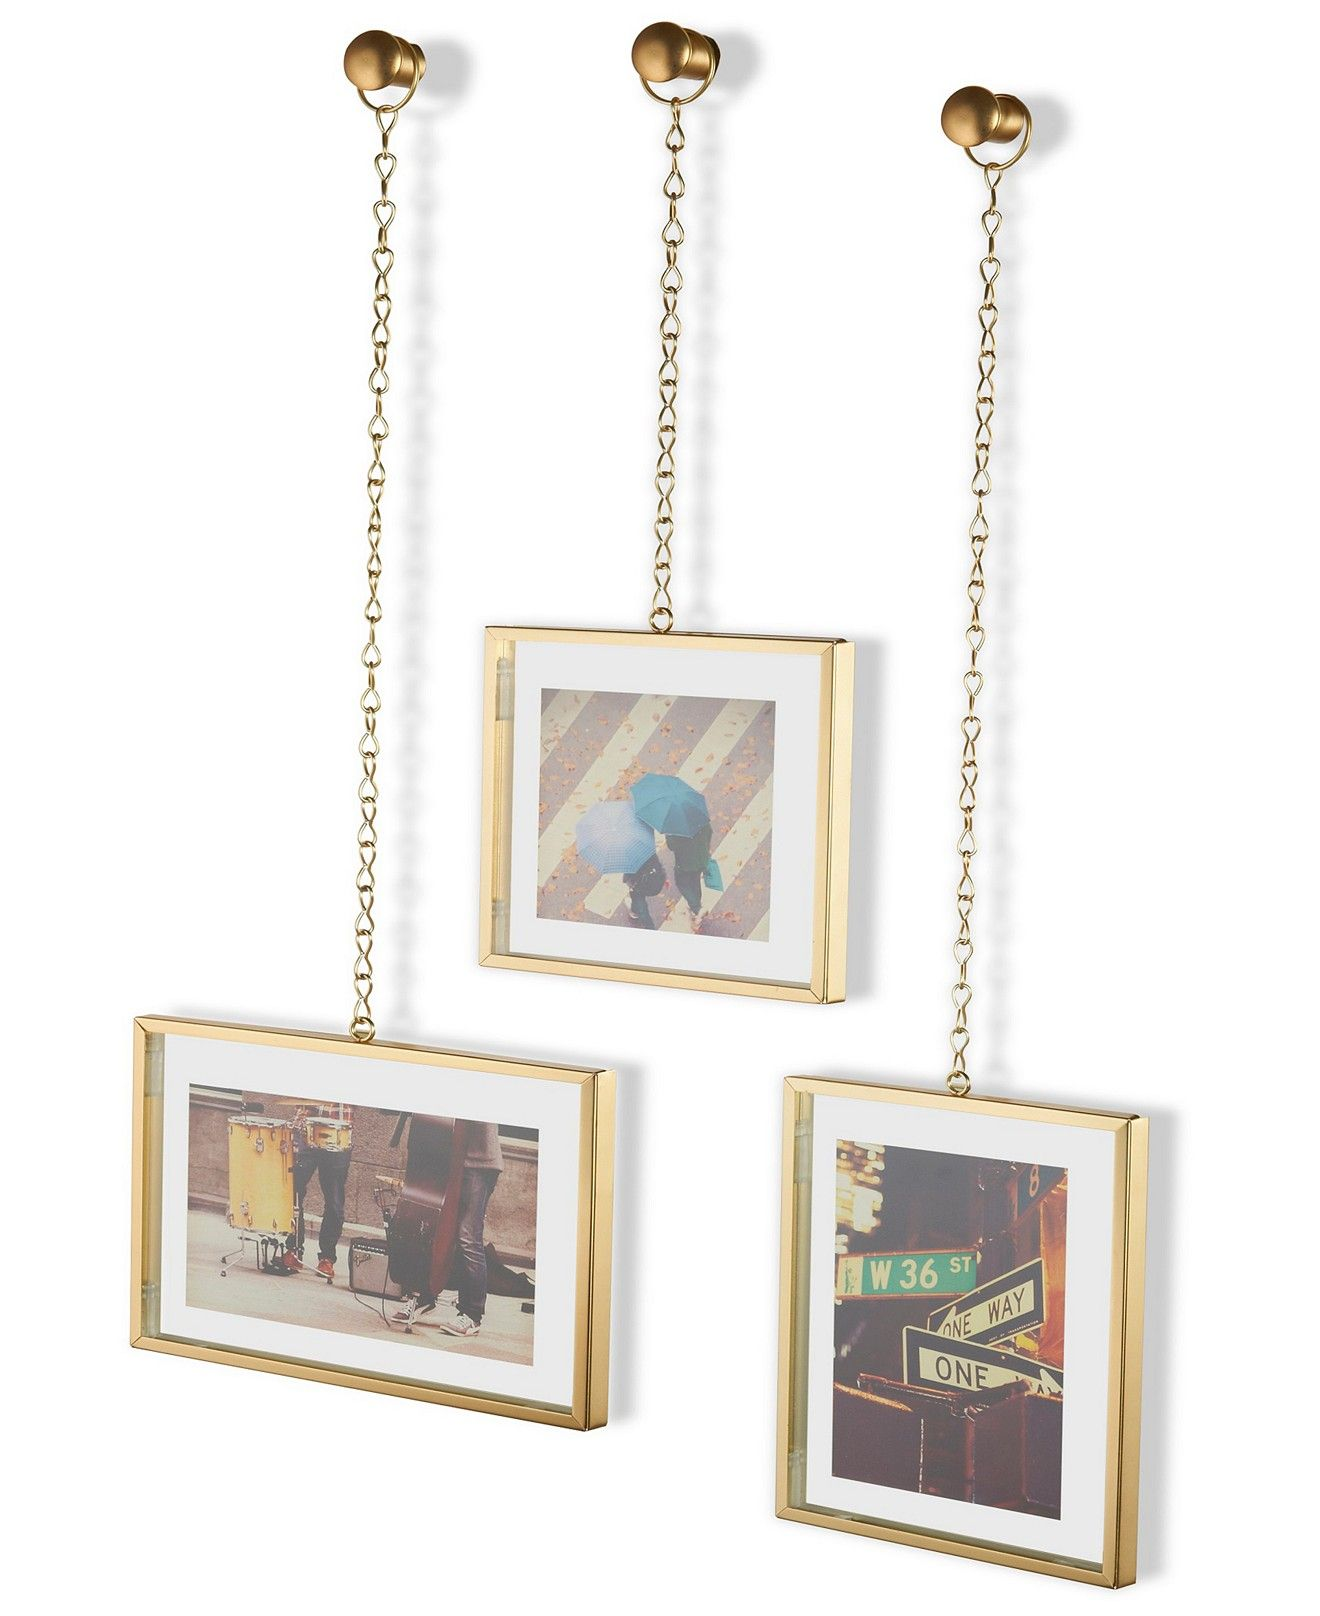 Umbra Fotochain Photo Display Picture Frames Chain Straps Make Your